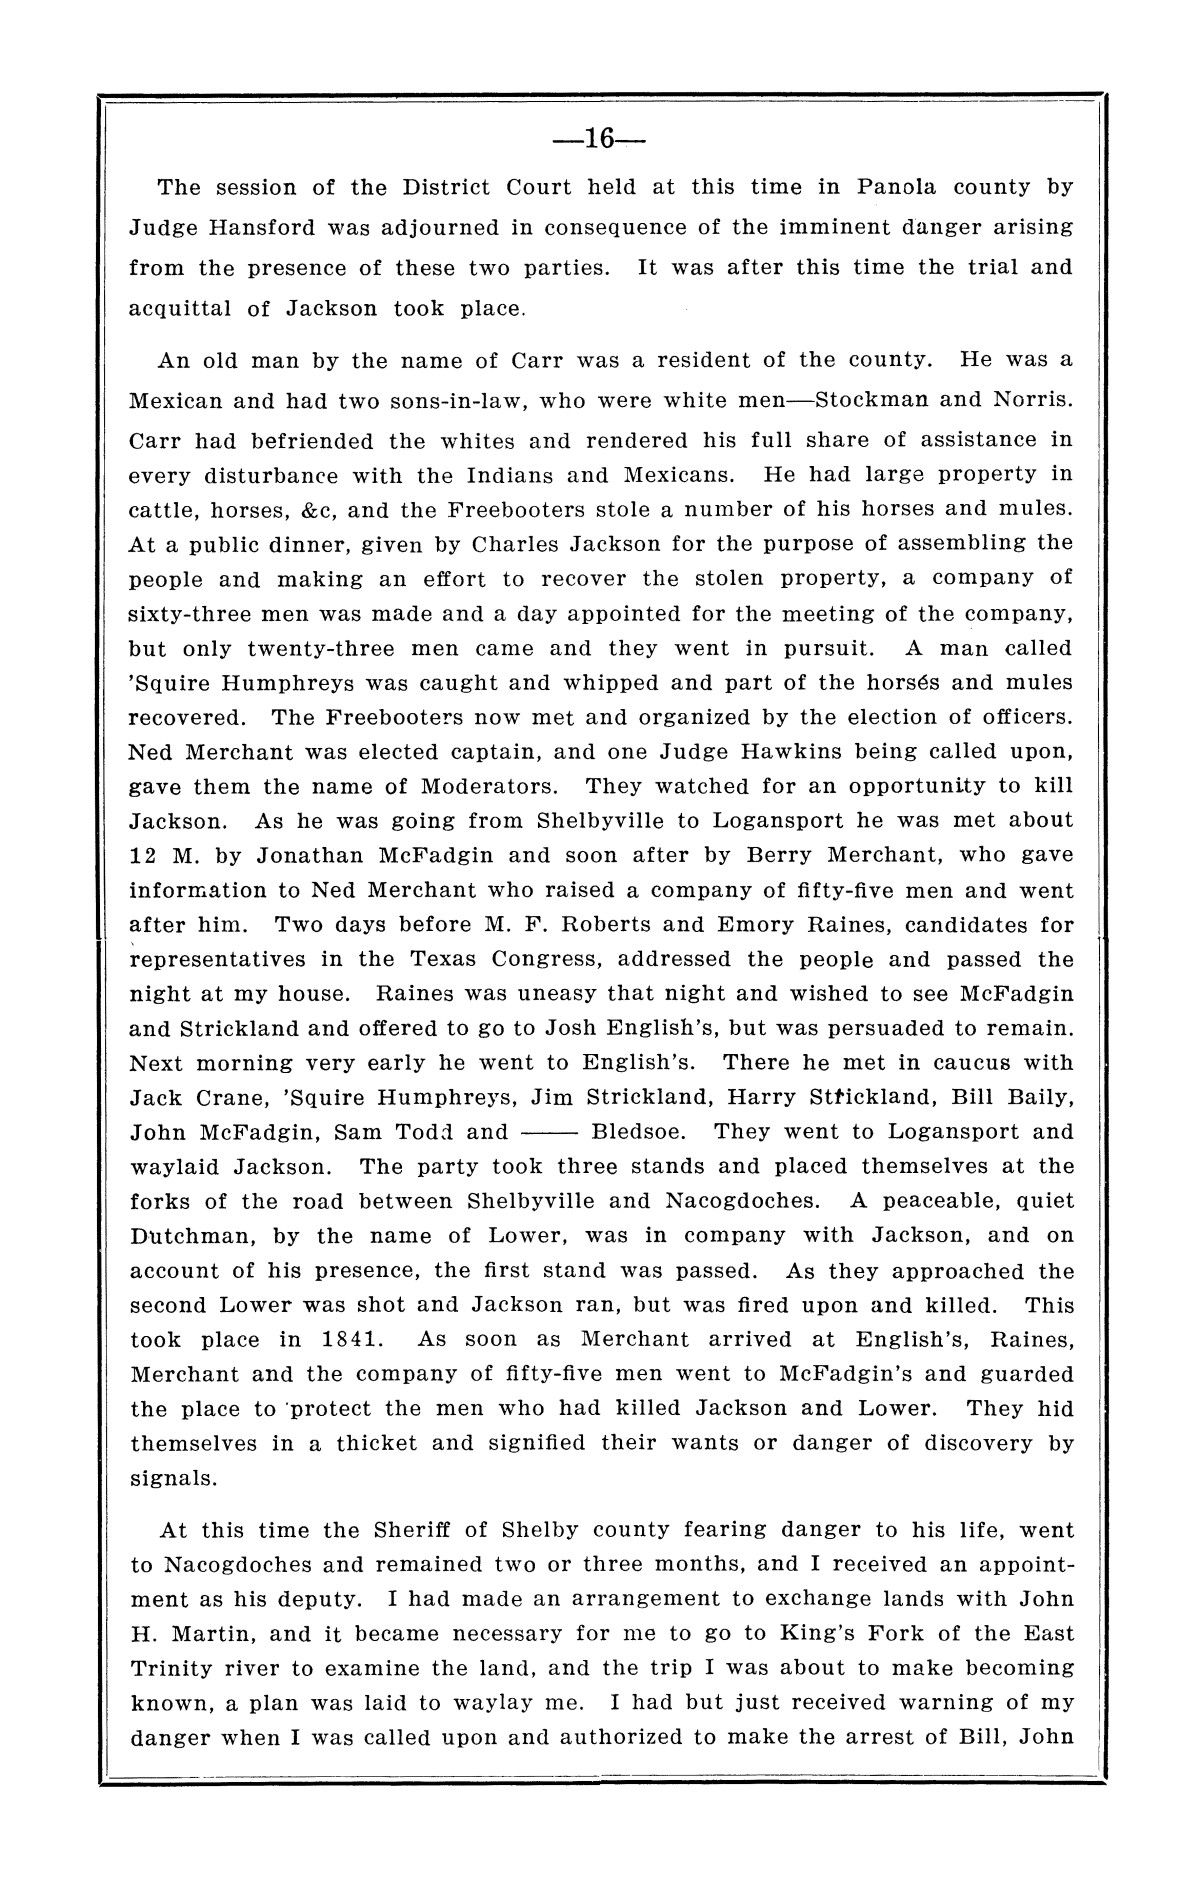 History of the regulators and moderators and the Shelby County war in 1841 and 1842, in the republic of Texas, with facts and incidents in the early history of the republic and state, from 1837 to the annexation, together with incidents of frontier life and Indian troubles, and the war on the reserve in Young County in 1857                                                                                                      [Sequence #]: 18 of 42